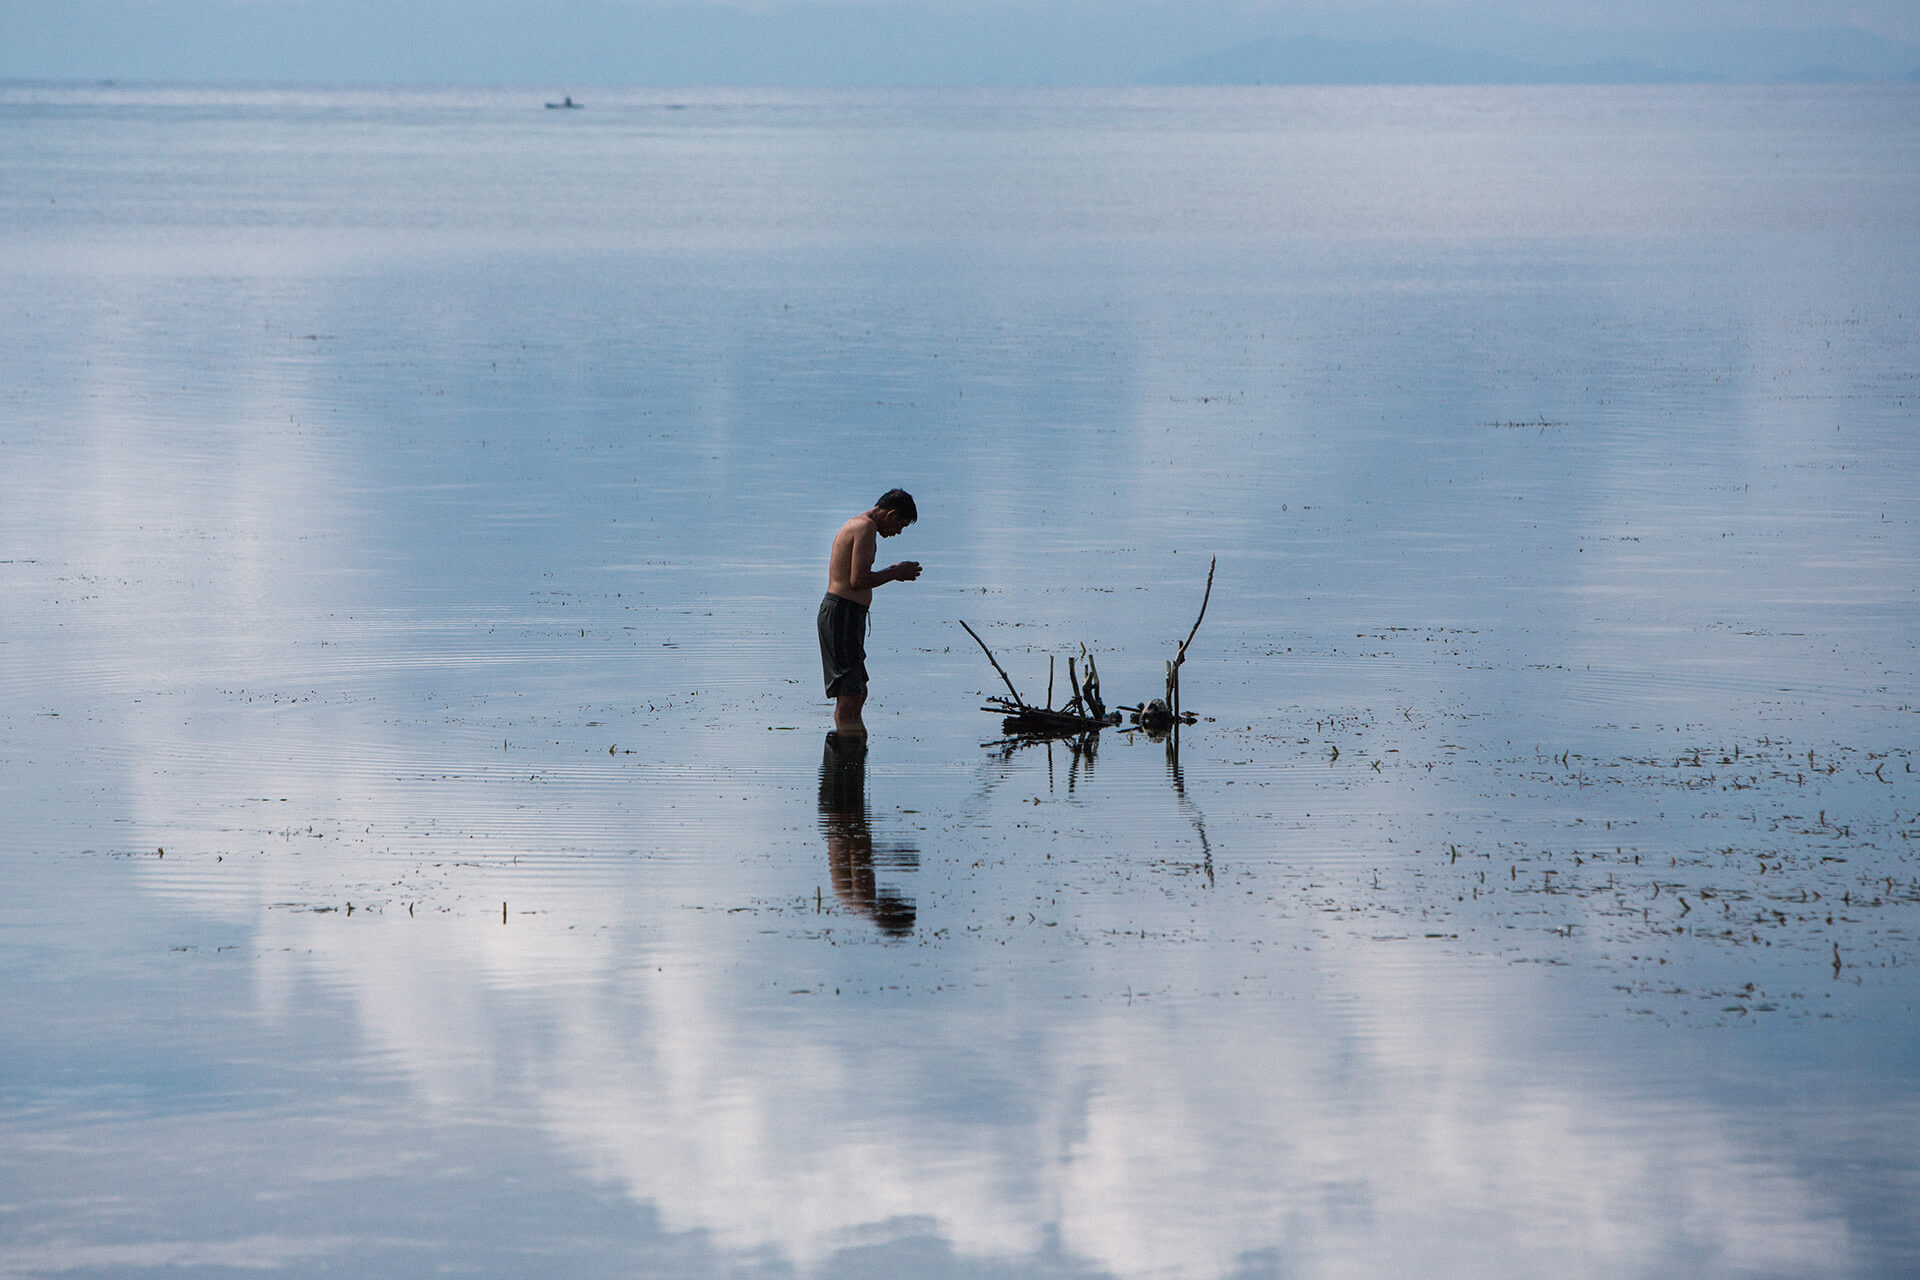 A man soaks coconut fronds in the ocean in preparation for use as a building material.